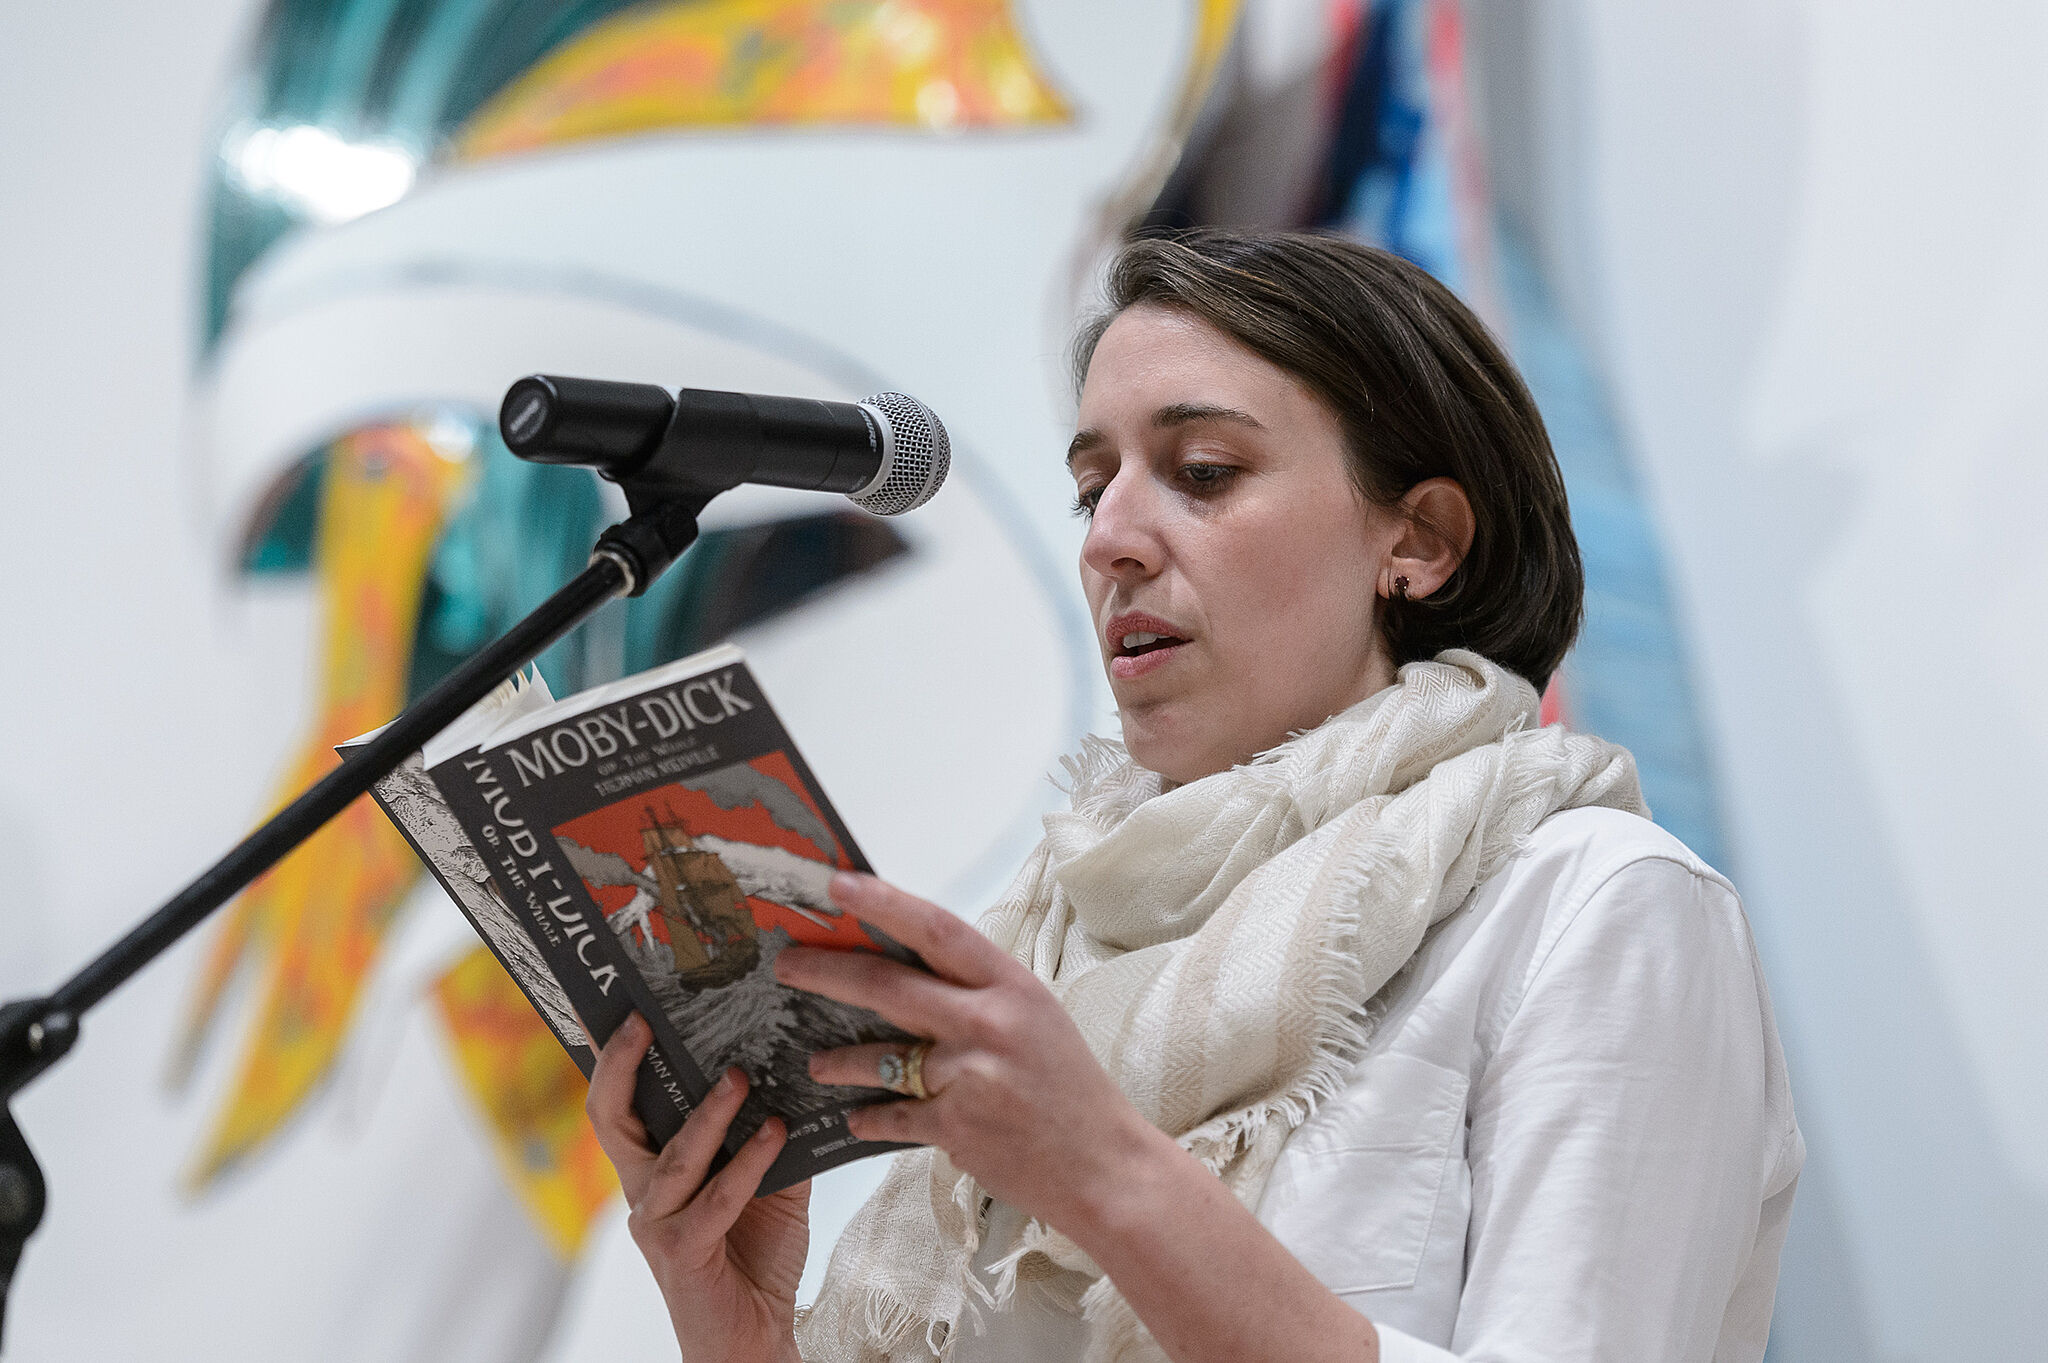 Woman reading a book with microphone.